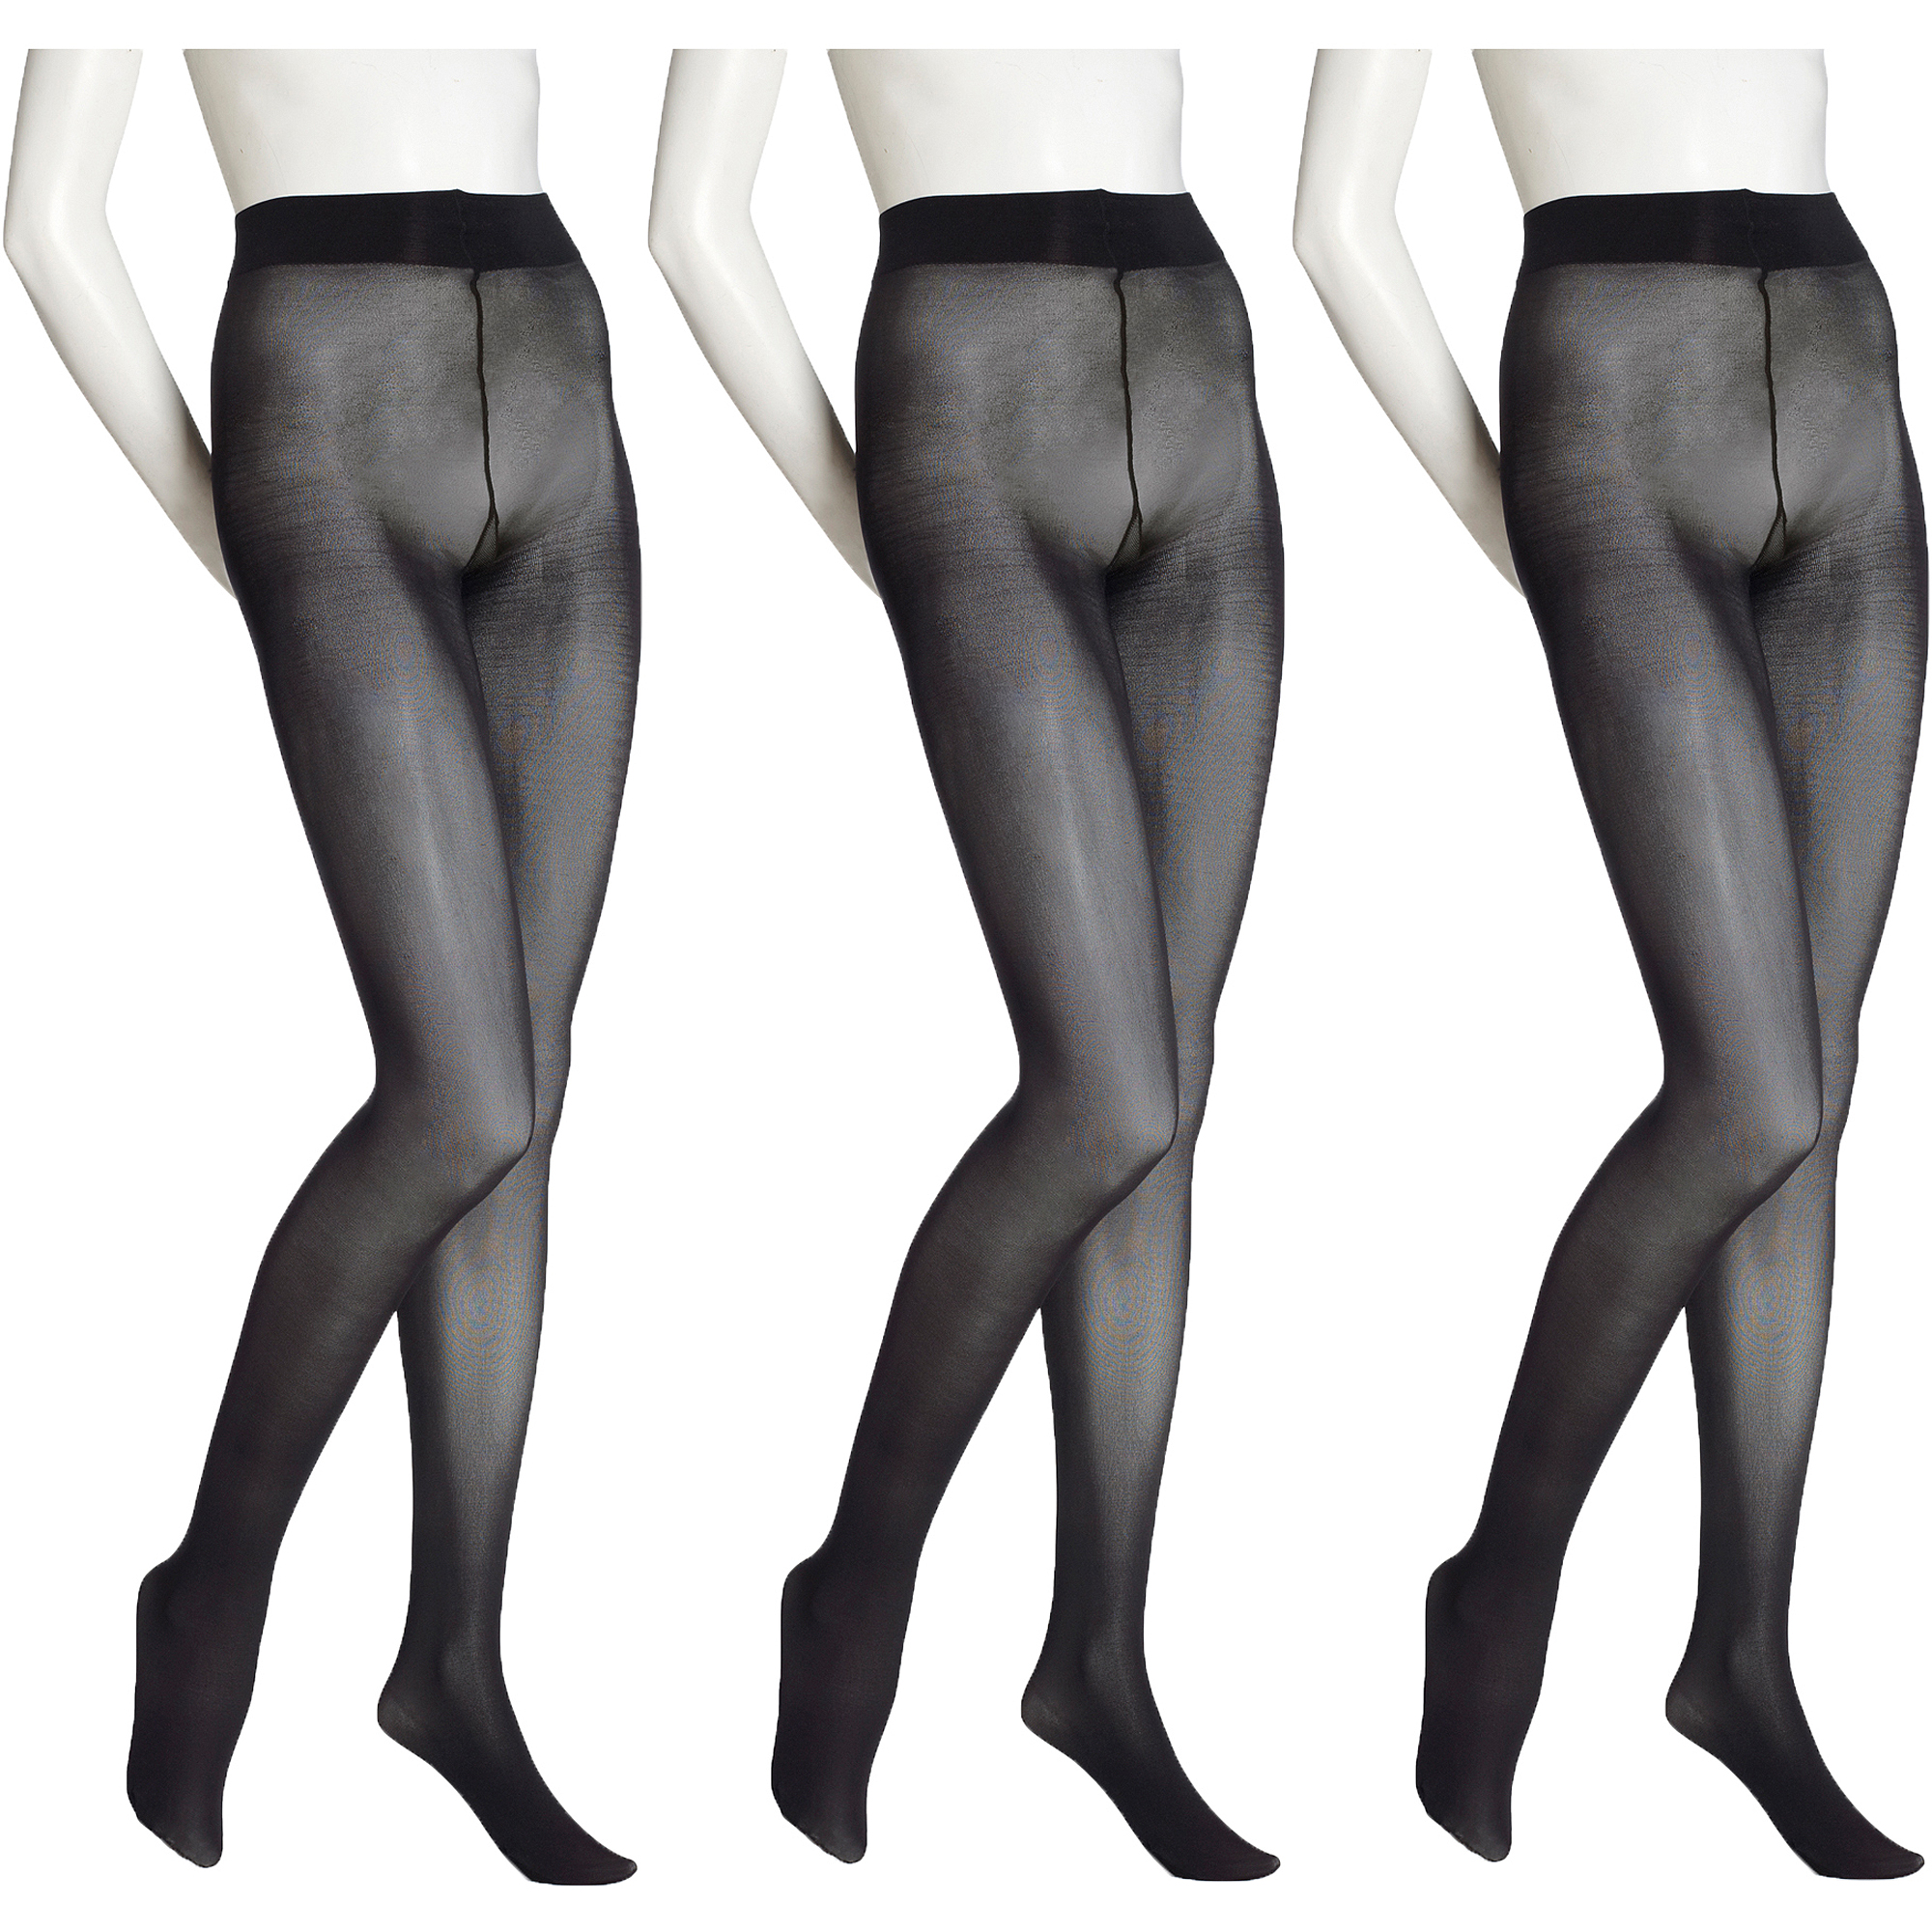 Not wear to pantyhose Tell women